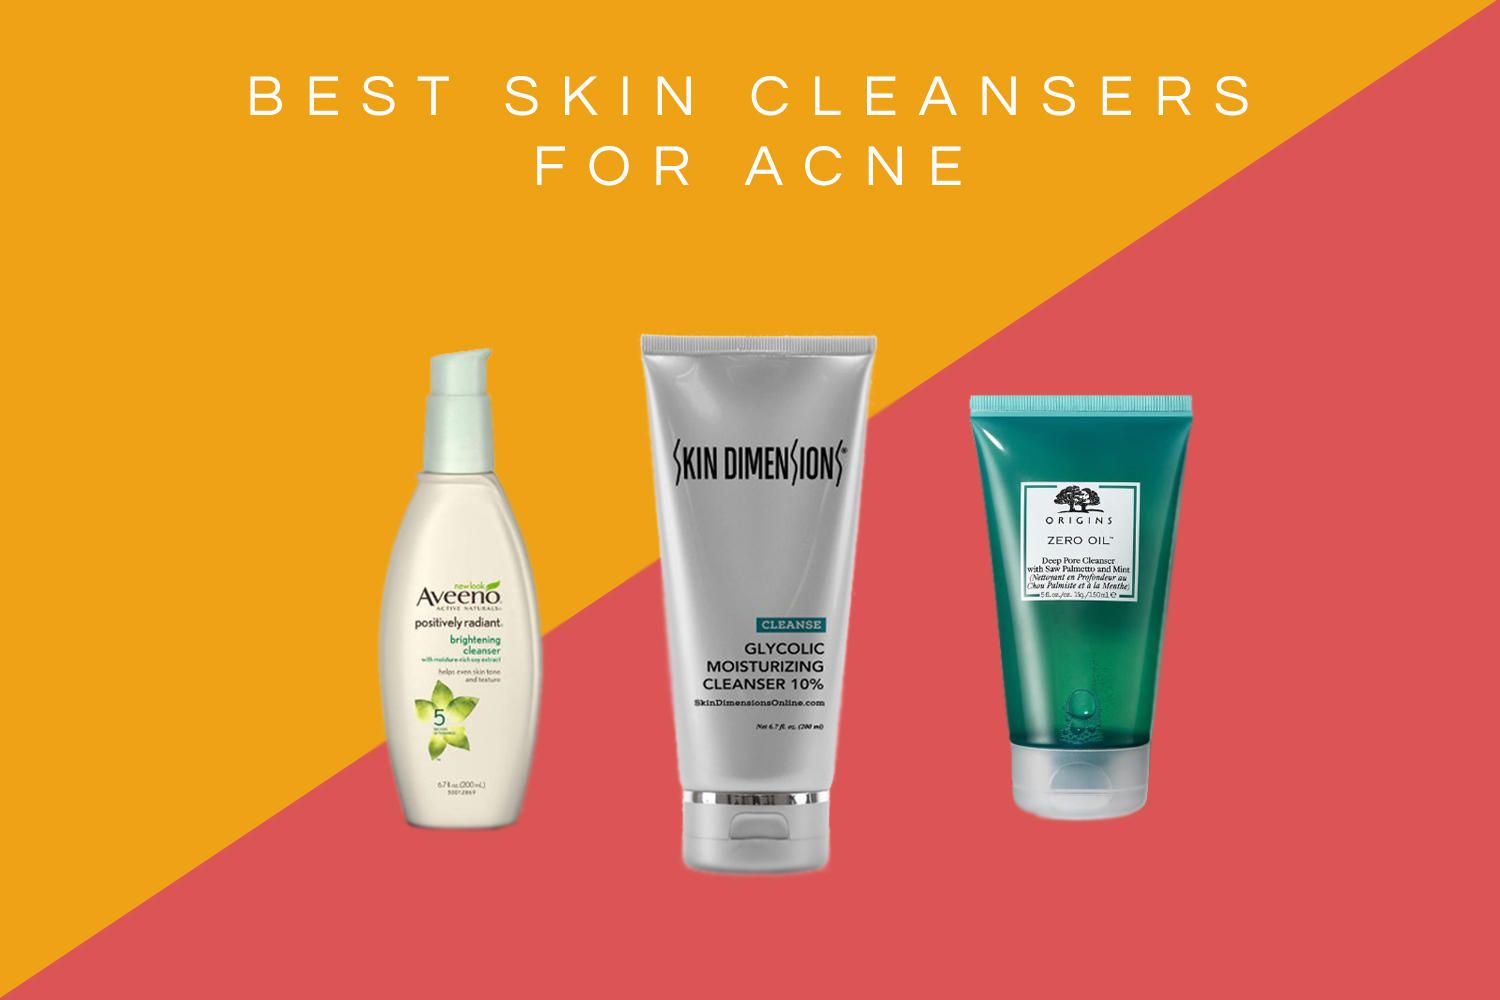 Blog 39 Truryder Mens Blog Men S Style Hair Health Lifestyle Ever Wonder How To Get Rid Of Acne Or Skin Cleanser Products Acne Skin Cleanser Acne